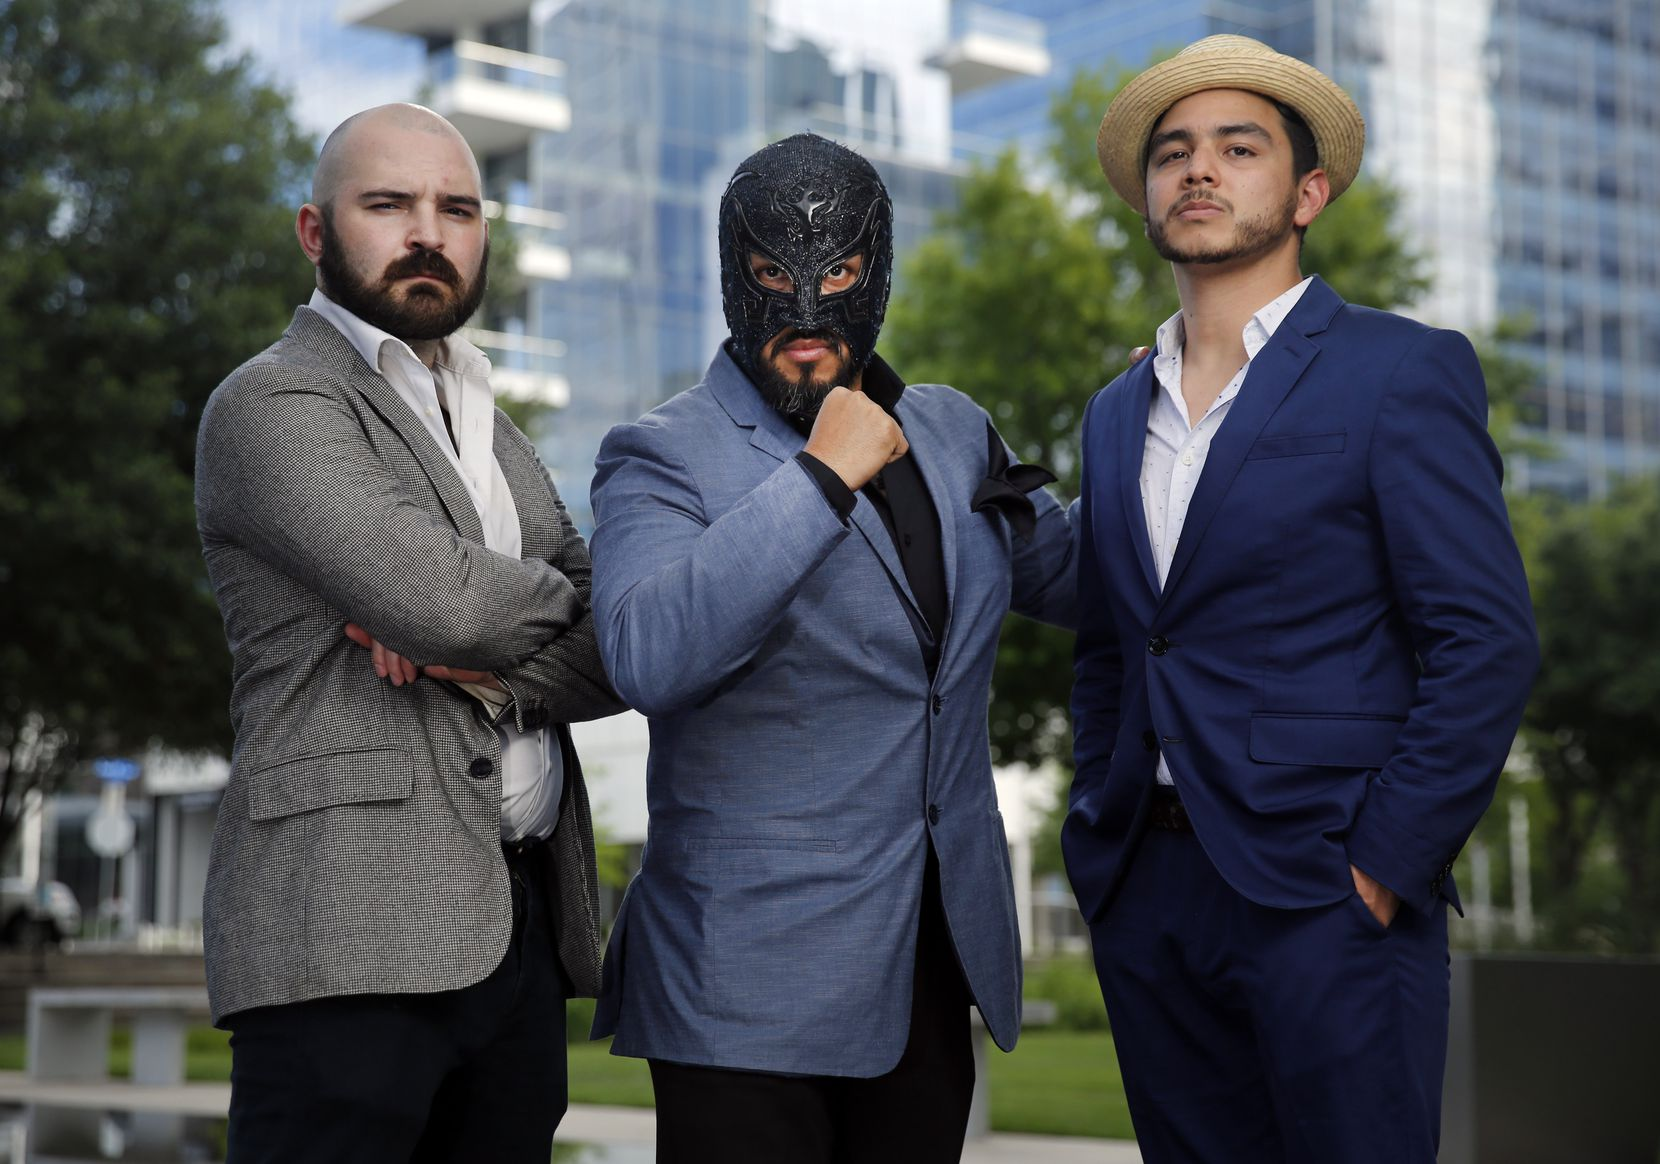 """""""Lucha Teotl"""" writer-directors Jeff Colangelo, left, and Chris Ramirez, far right, in the Dallas Arts District with fight coordinator Aski the Mayan Warrior, who has been wrestling on the """"lucha libre"""" circuit in the U.S. and abroad for 20 years."""